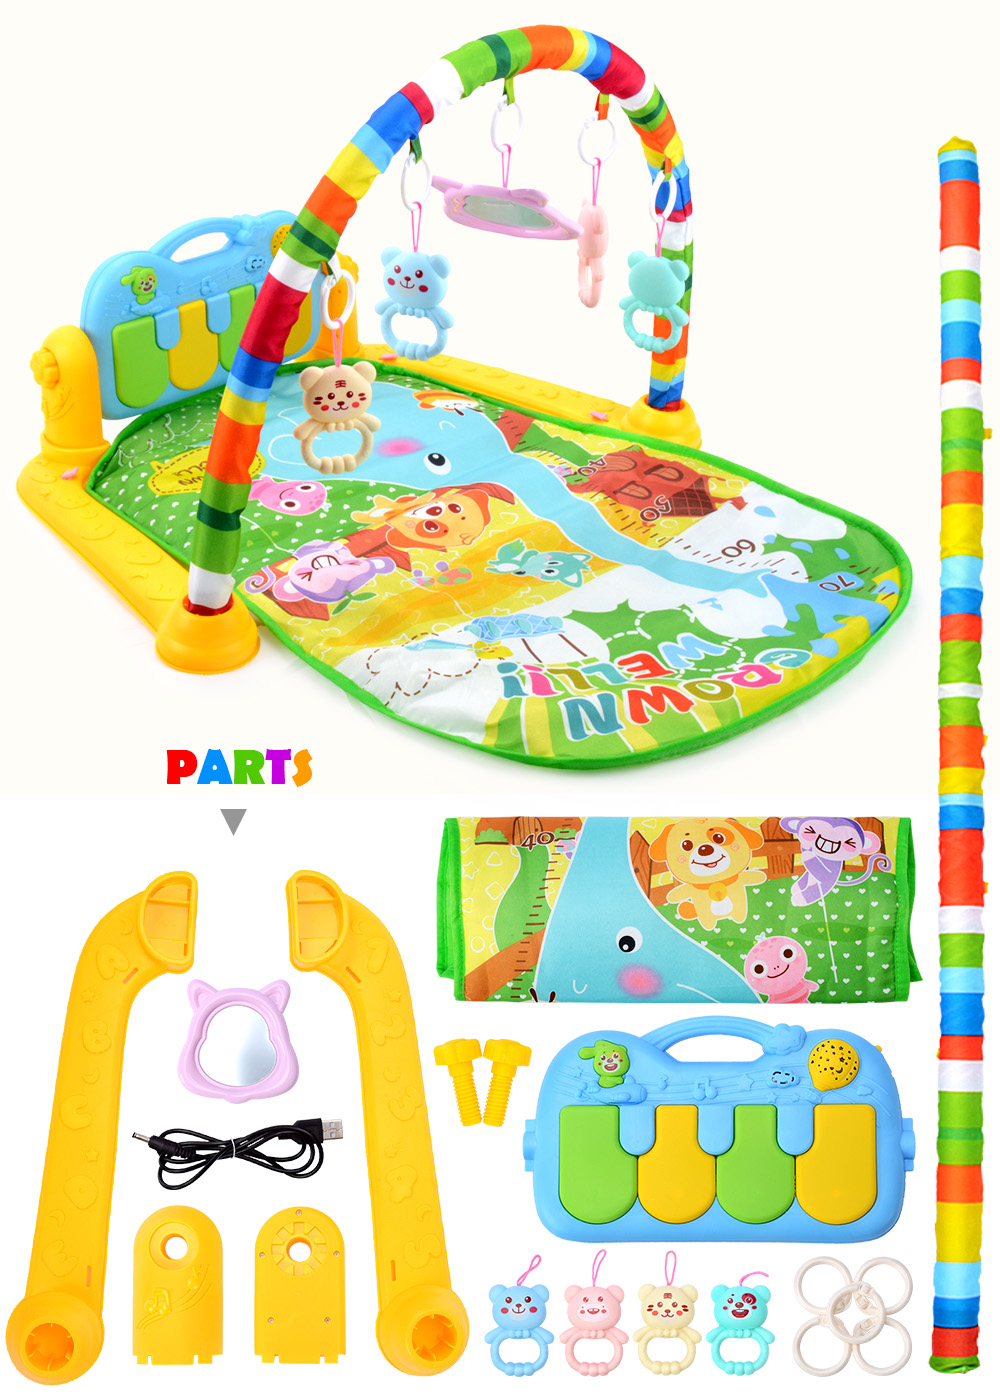 H029c885bb07847248d4e3d201e0e13f0K 16 Styles Baby Music Rack Play Mat Kid Rug Puzzle Carpet Piano Keyboard Infant Playmat Early Education Gym Crawling Game Pad Toy